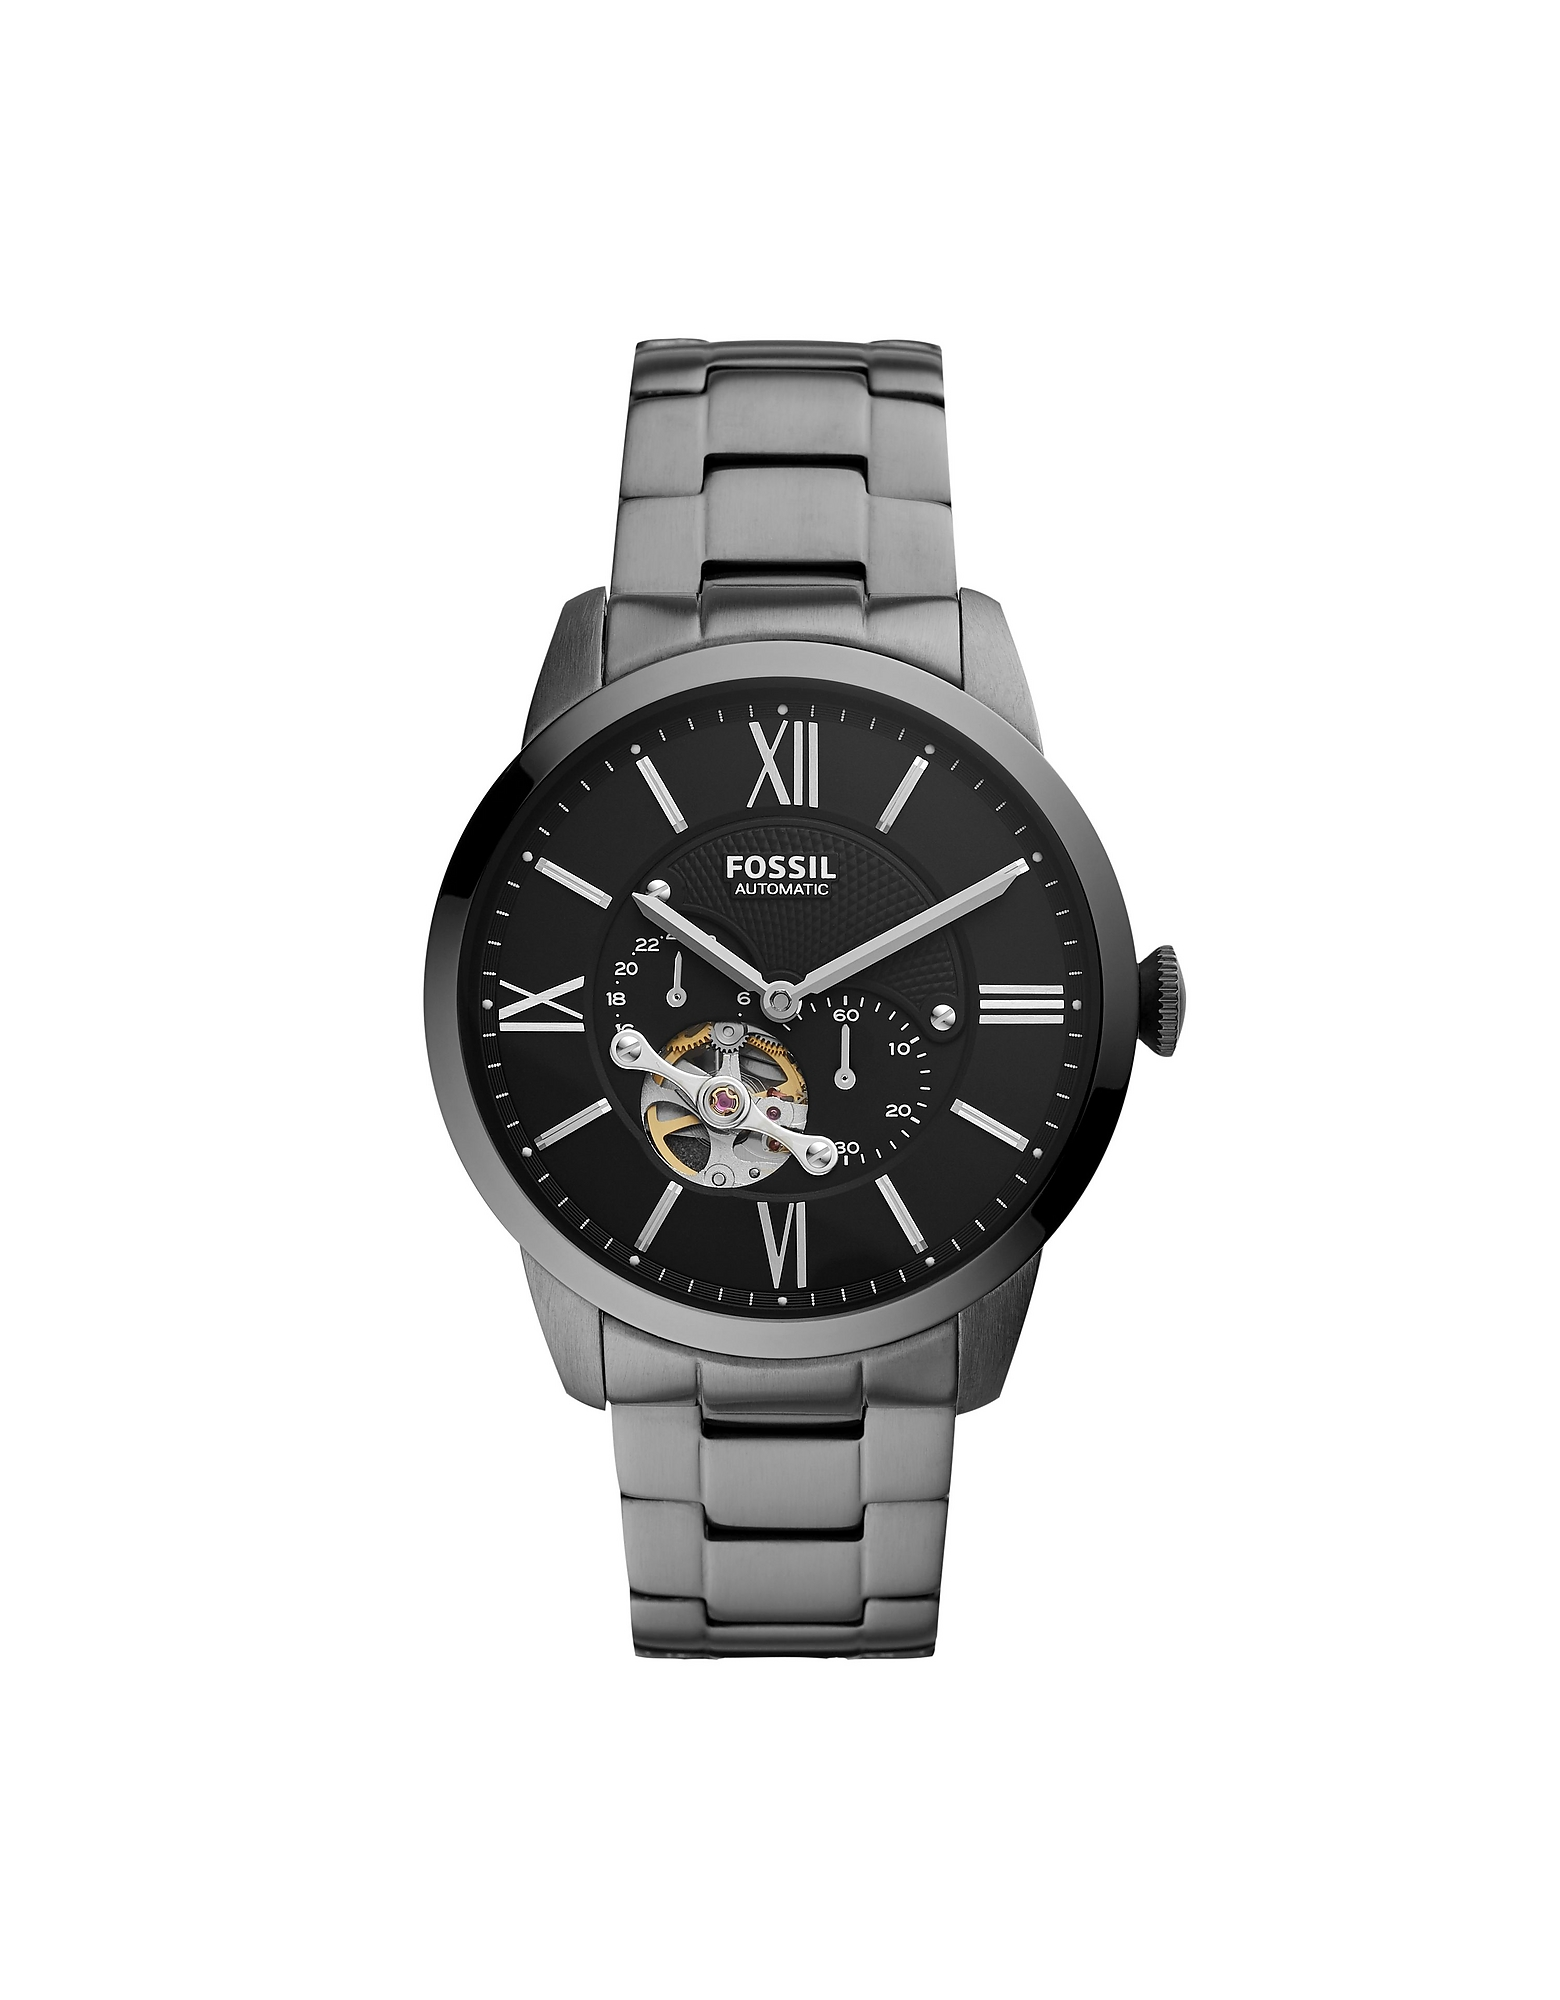 Fossil Designer Men's Watches, Townsman Automatic Stainless Steel Men's Watch